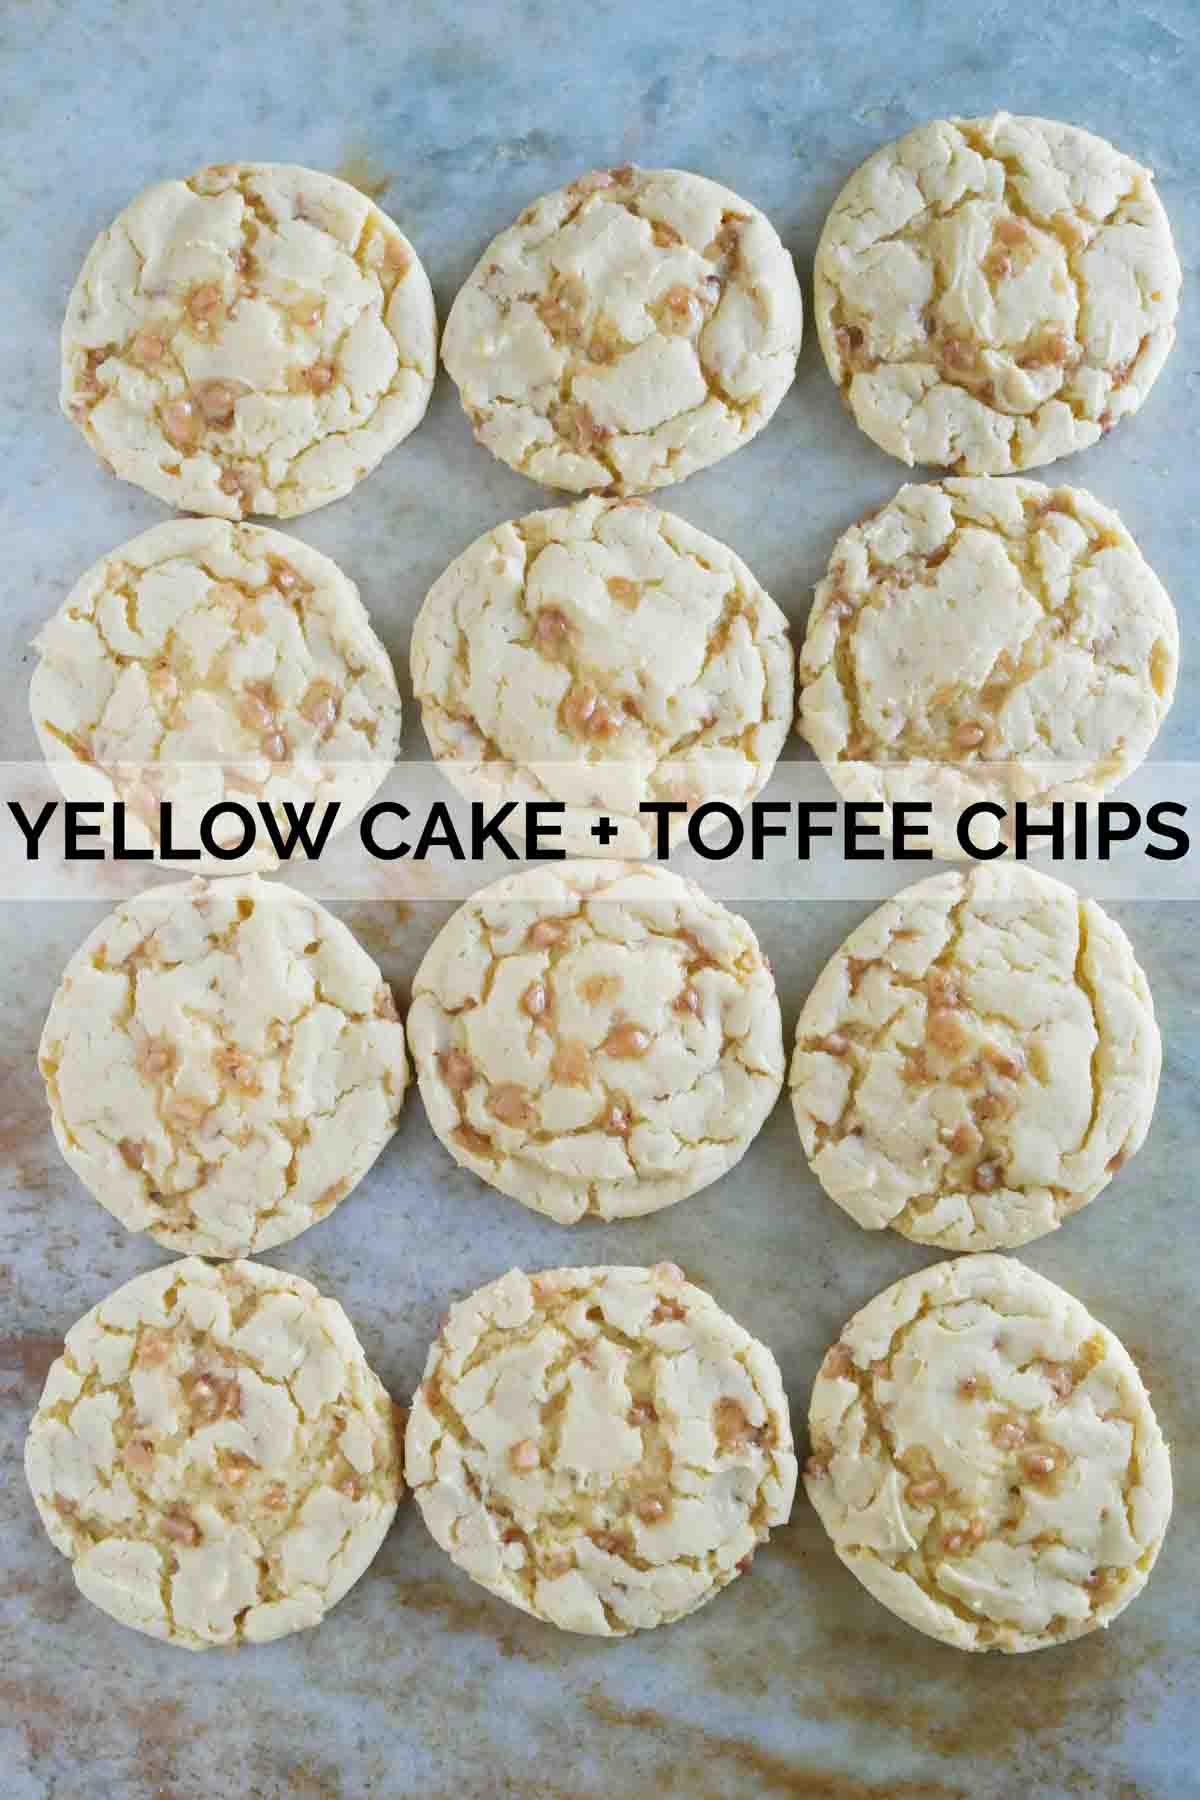 Cake mix cookies made from yellow cake mix and toffee chips